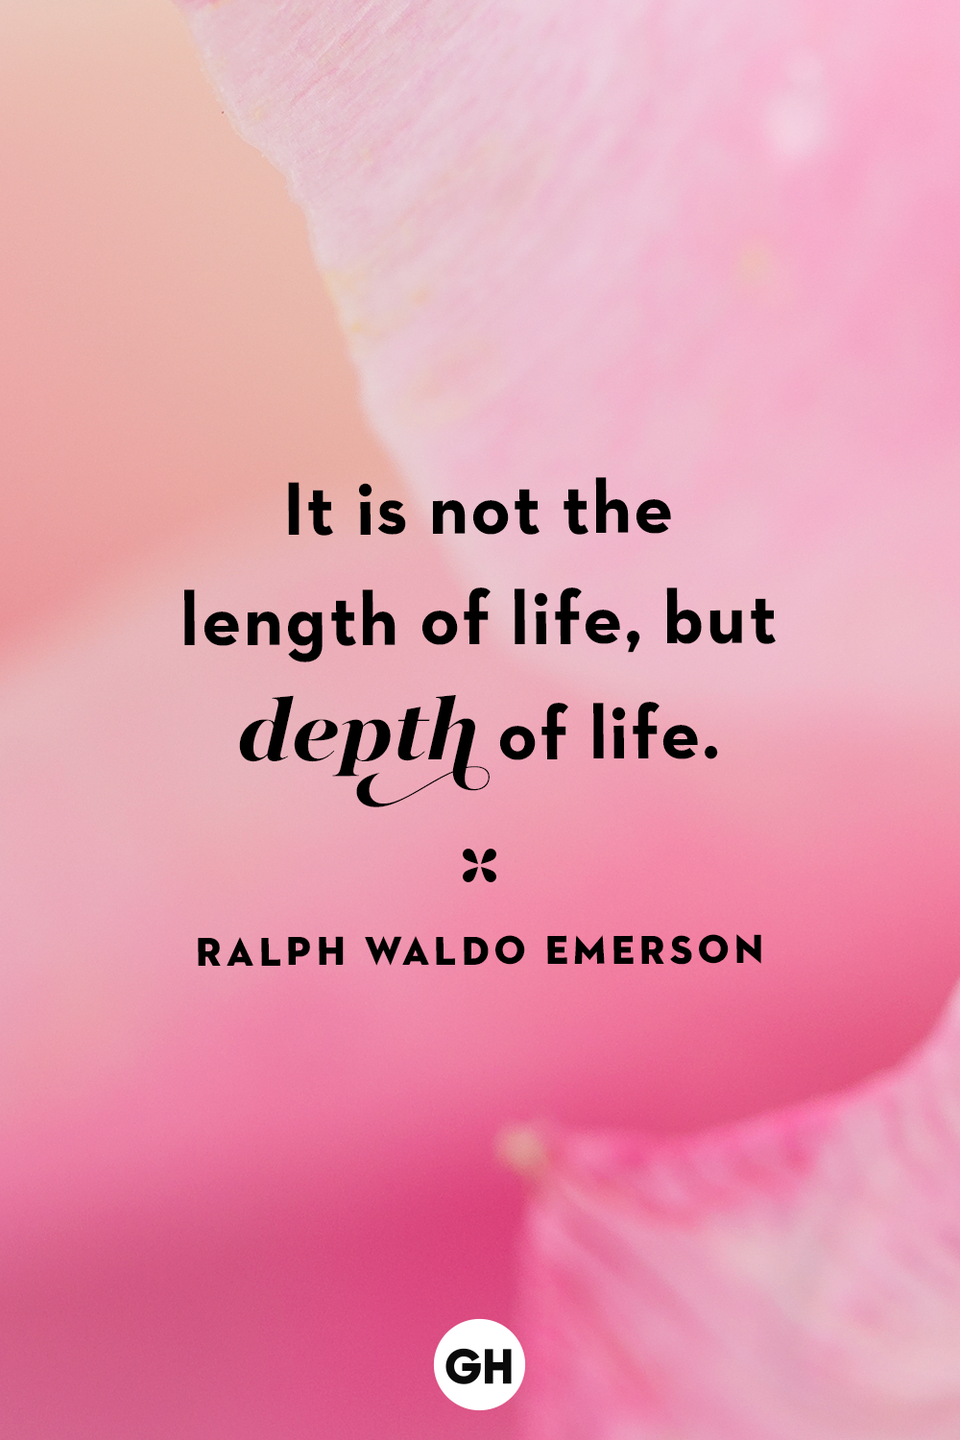 <p>It is not the length of life, but depth of life.</p>